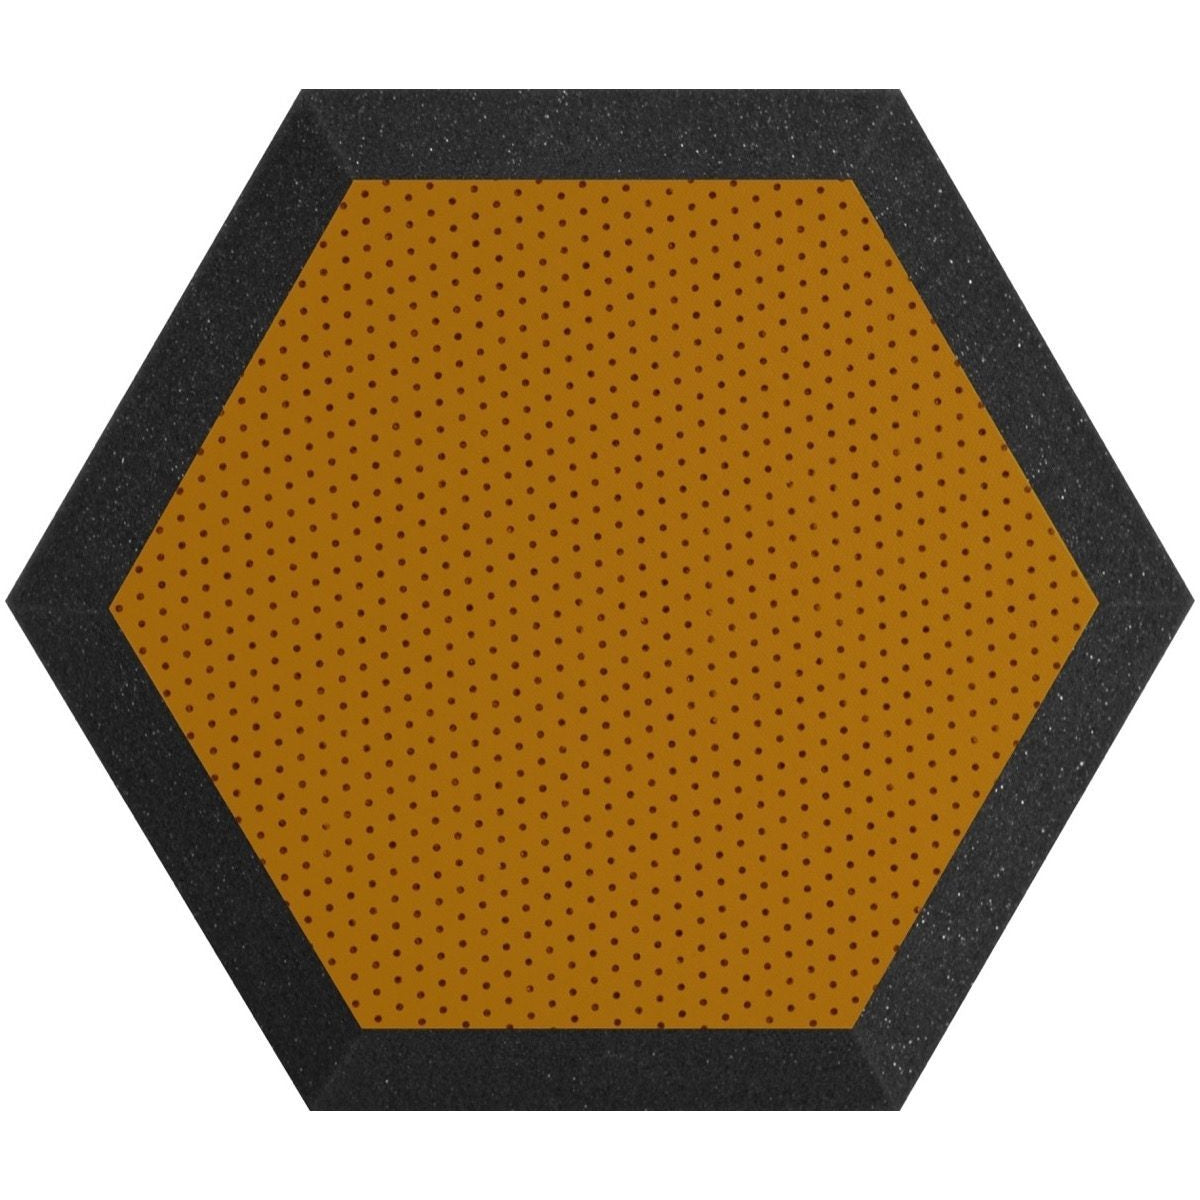 Ultimate Acoustics Hexagonal Foam Wall Panel (Pair), Charcoal/Butter, UA-HX-12KW, 12 Inch